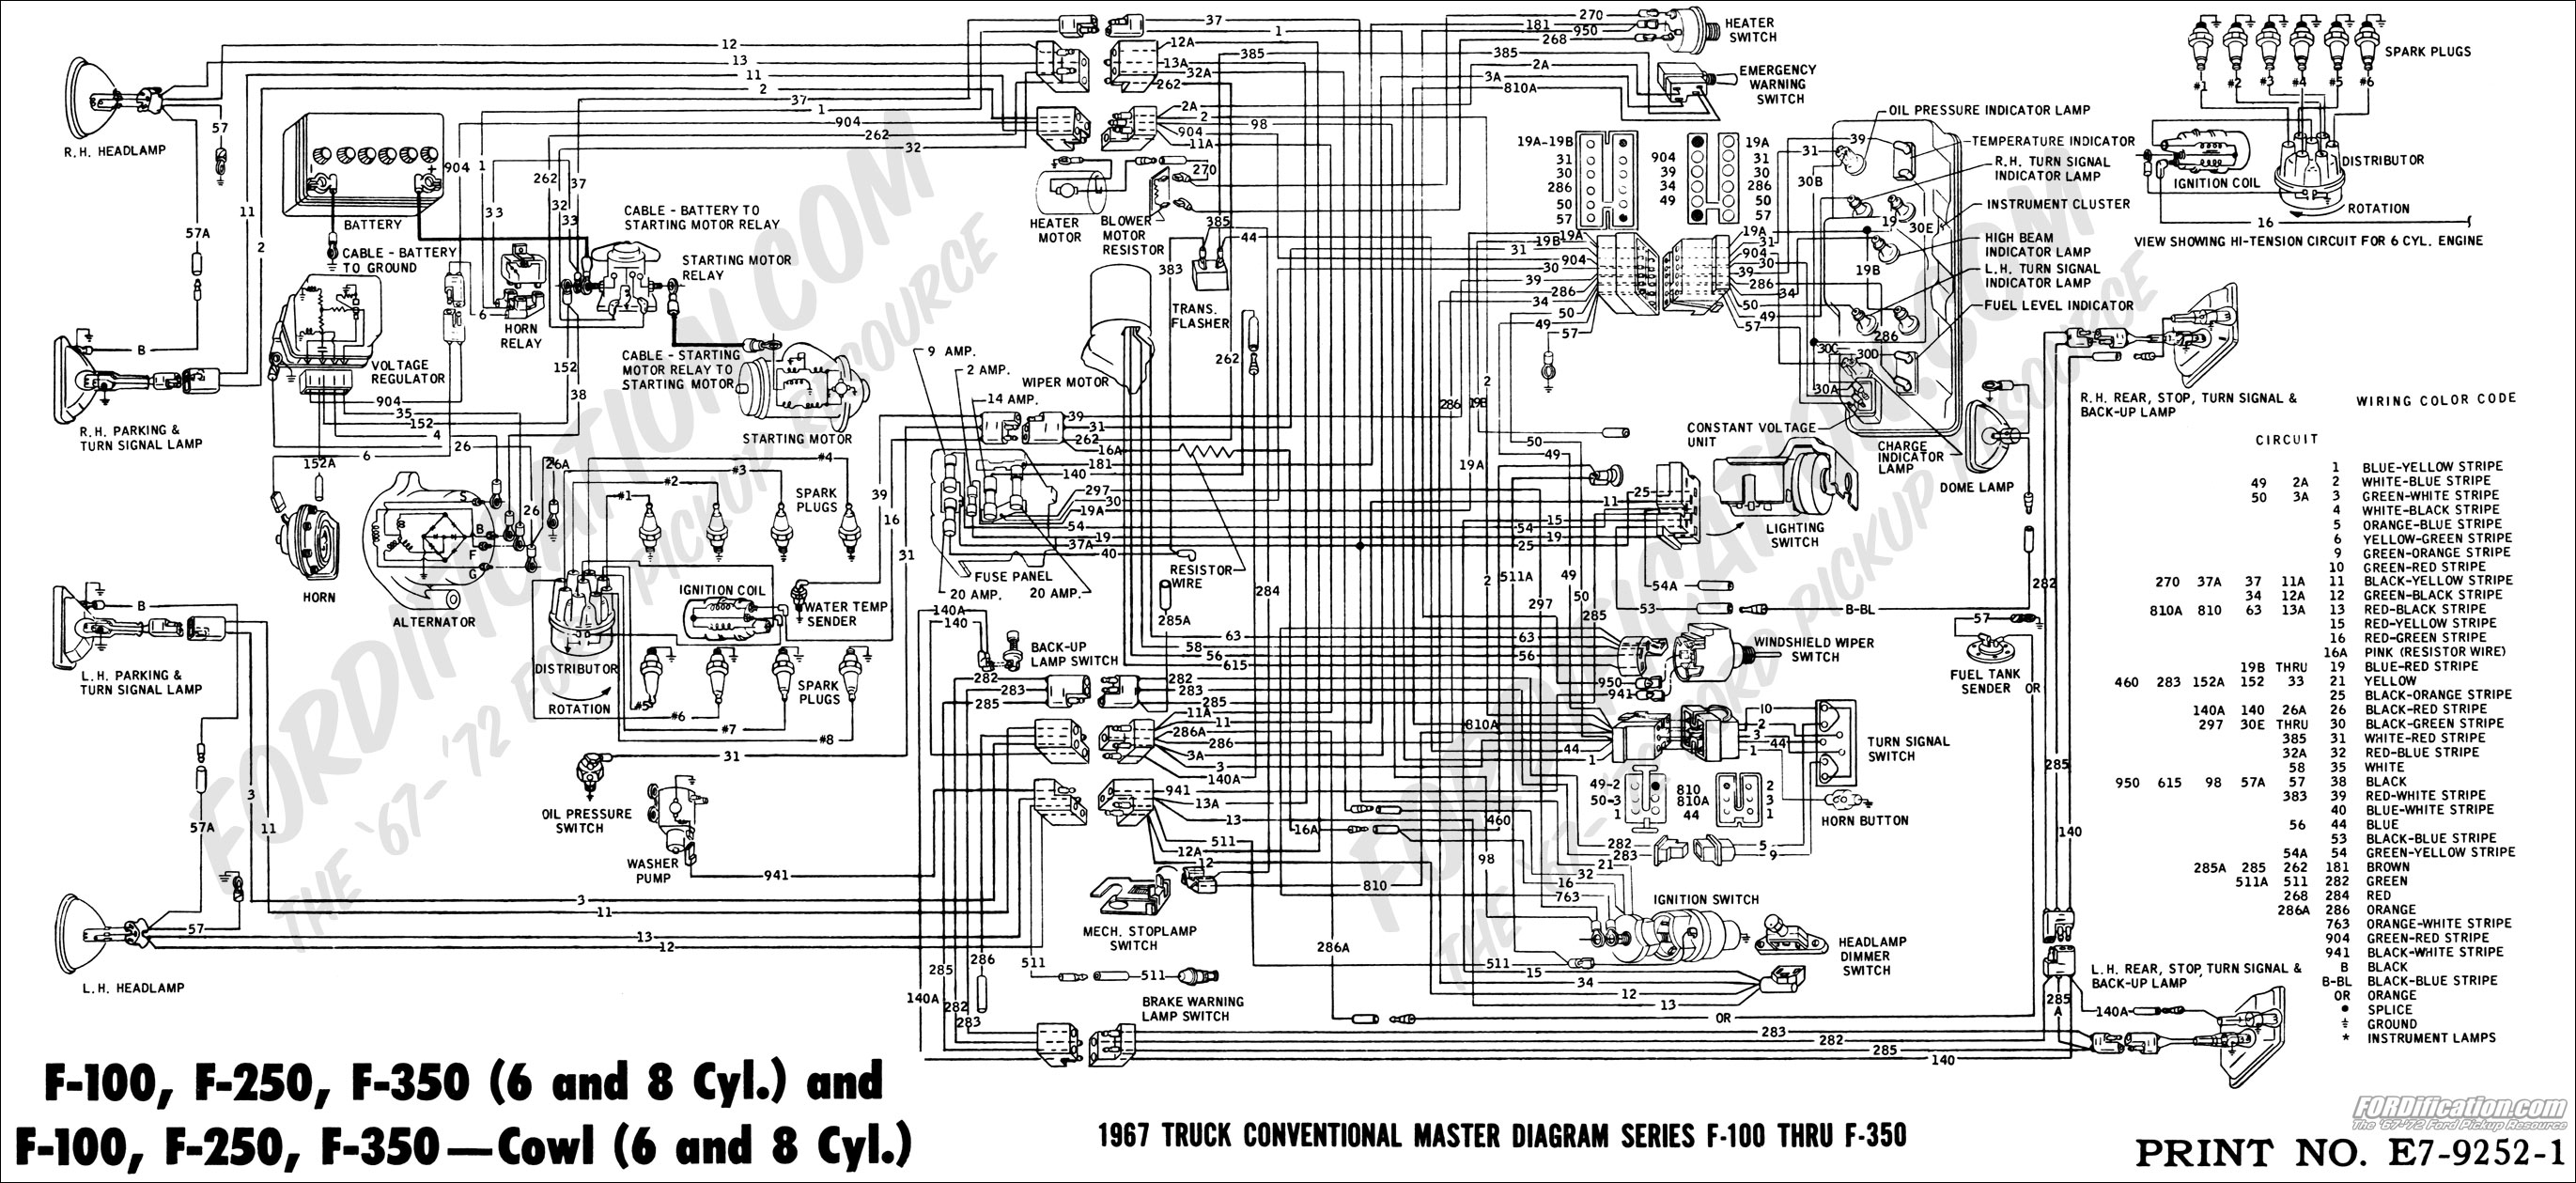 wiring diagram ford e350 schematics and wiring diagrams 2002 e350 fuse box diagram car wiring